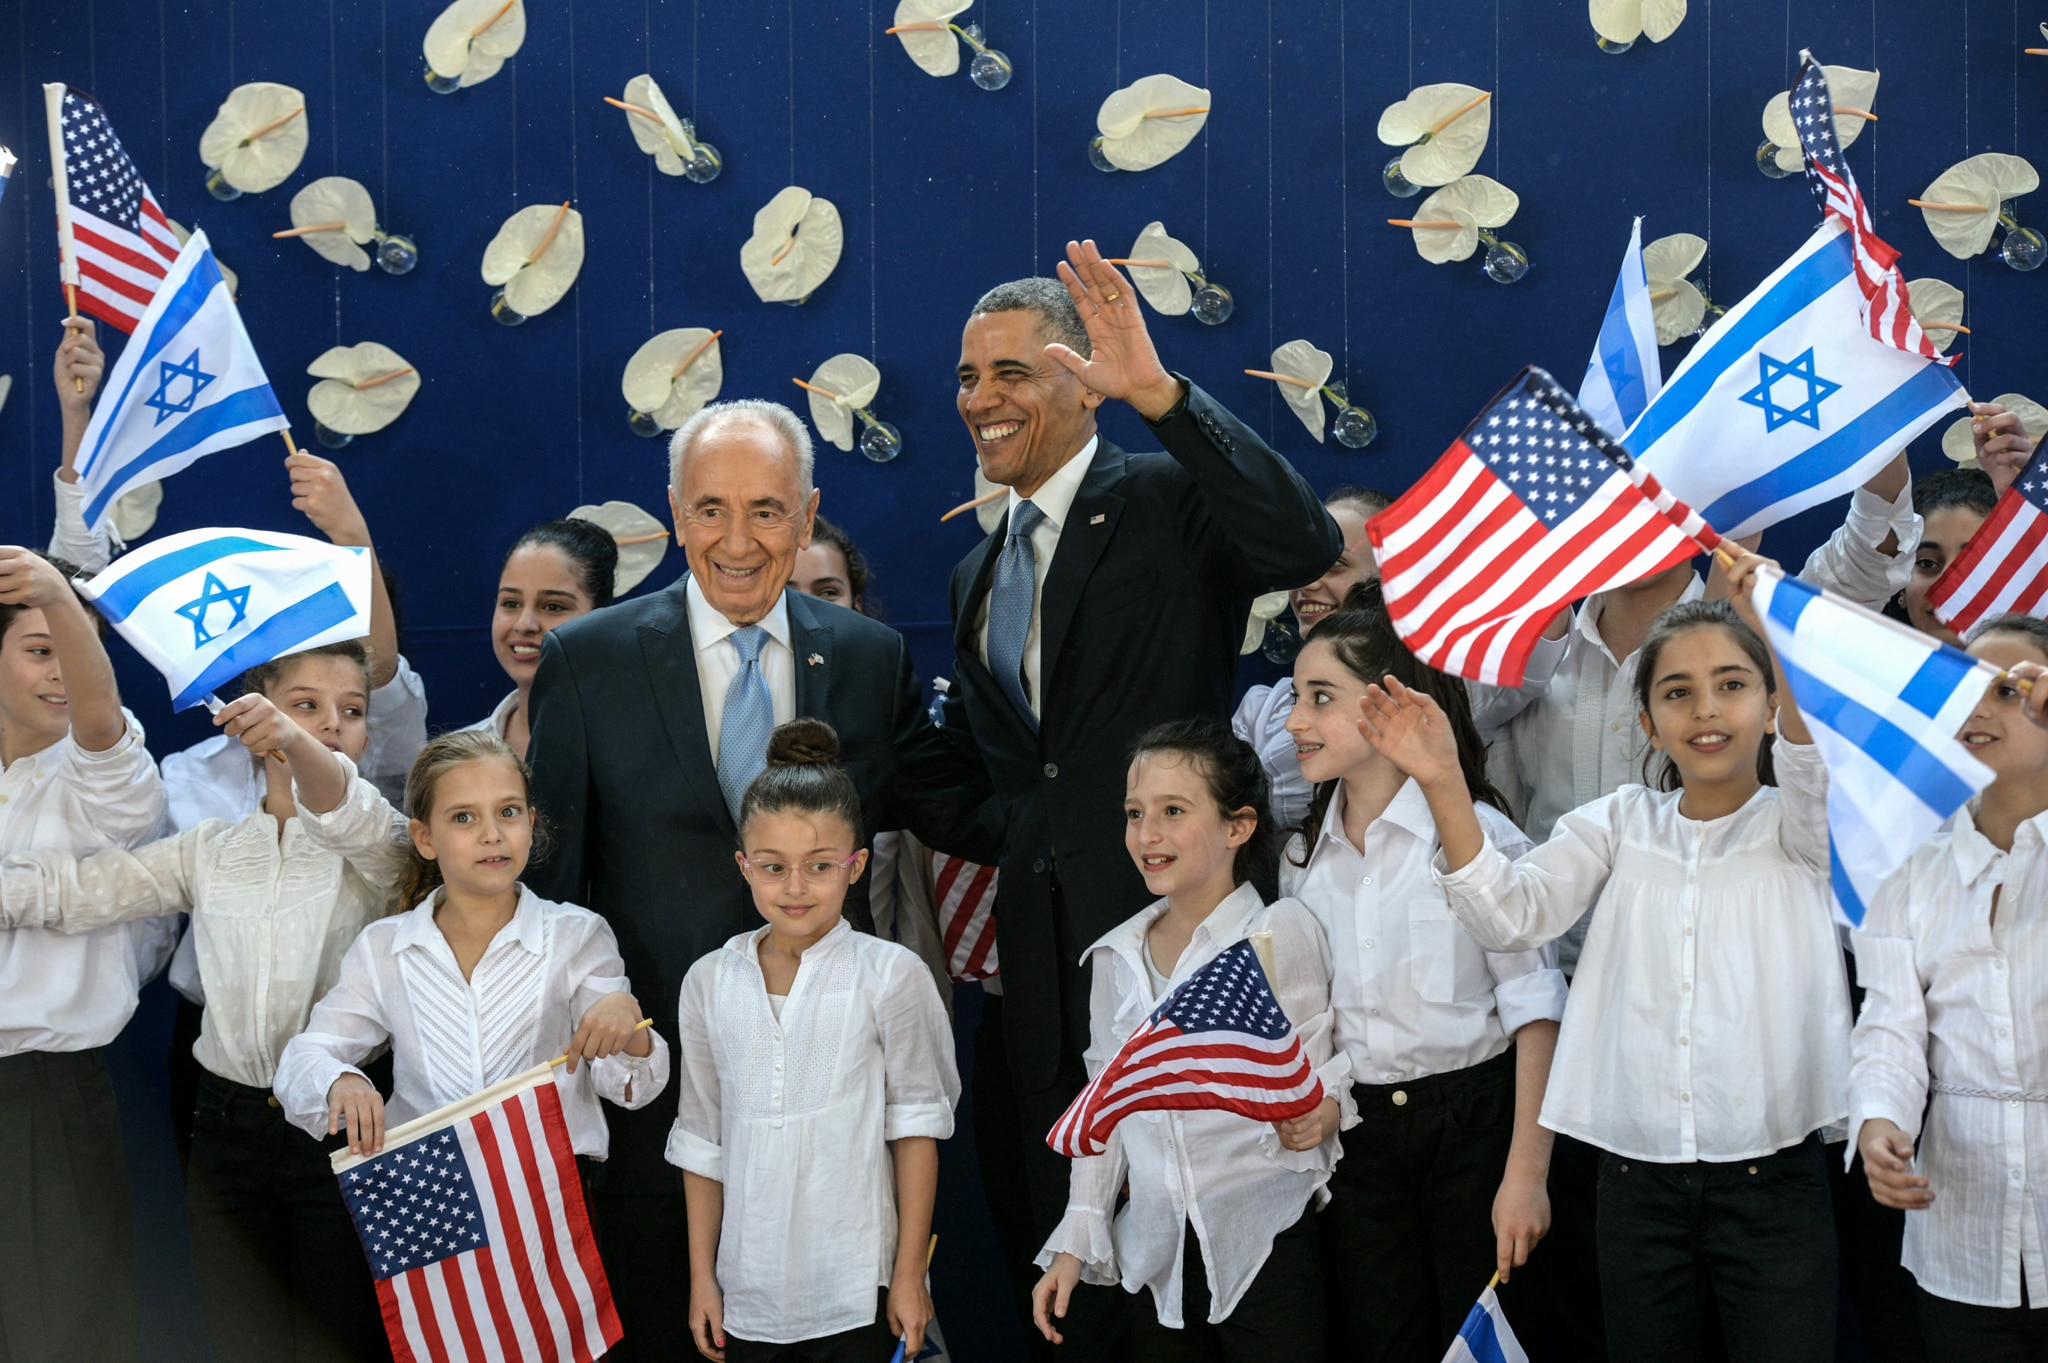 President Obama and a man standing amongst children (State Dept.)